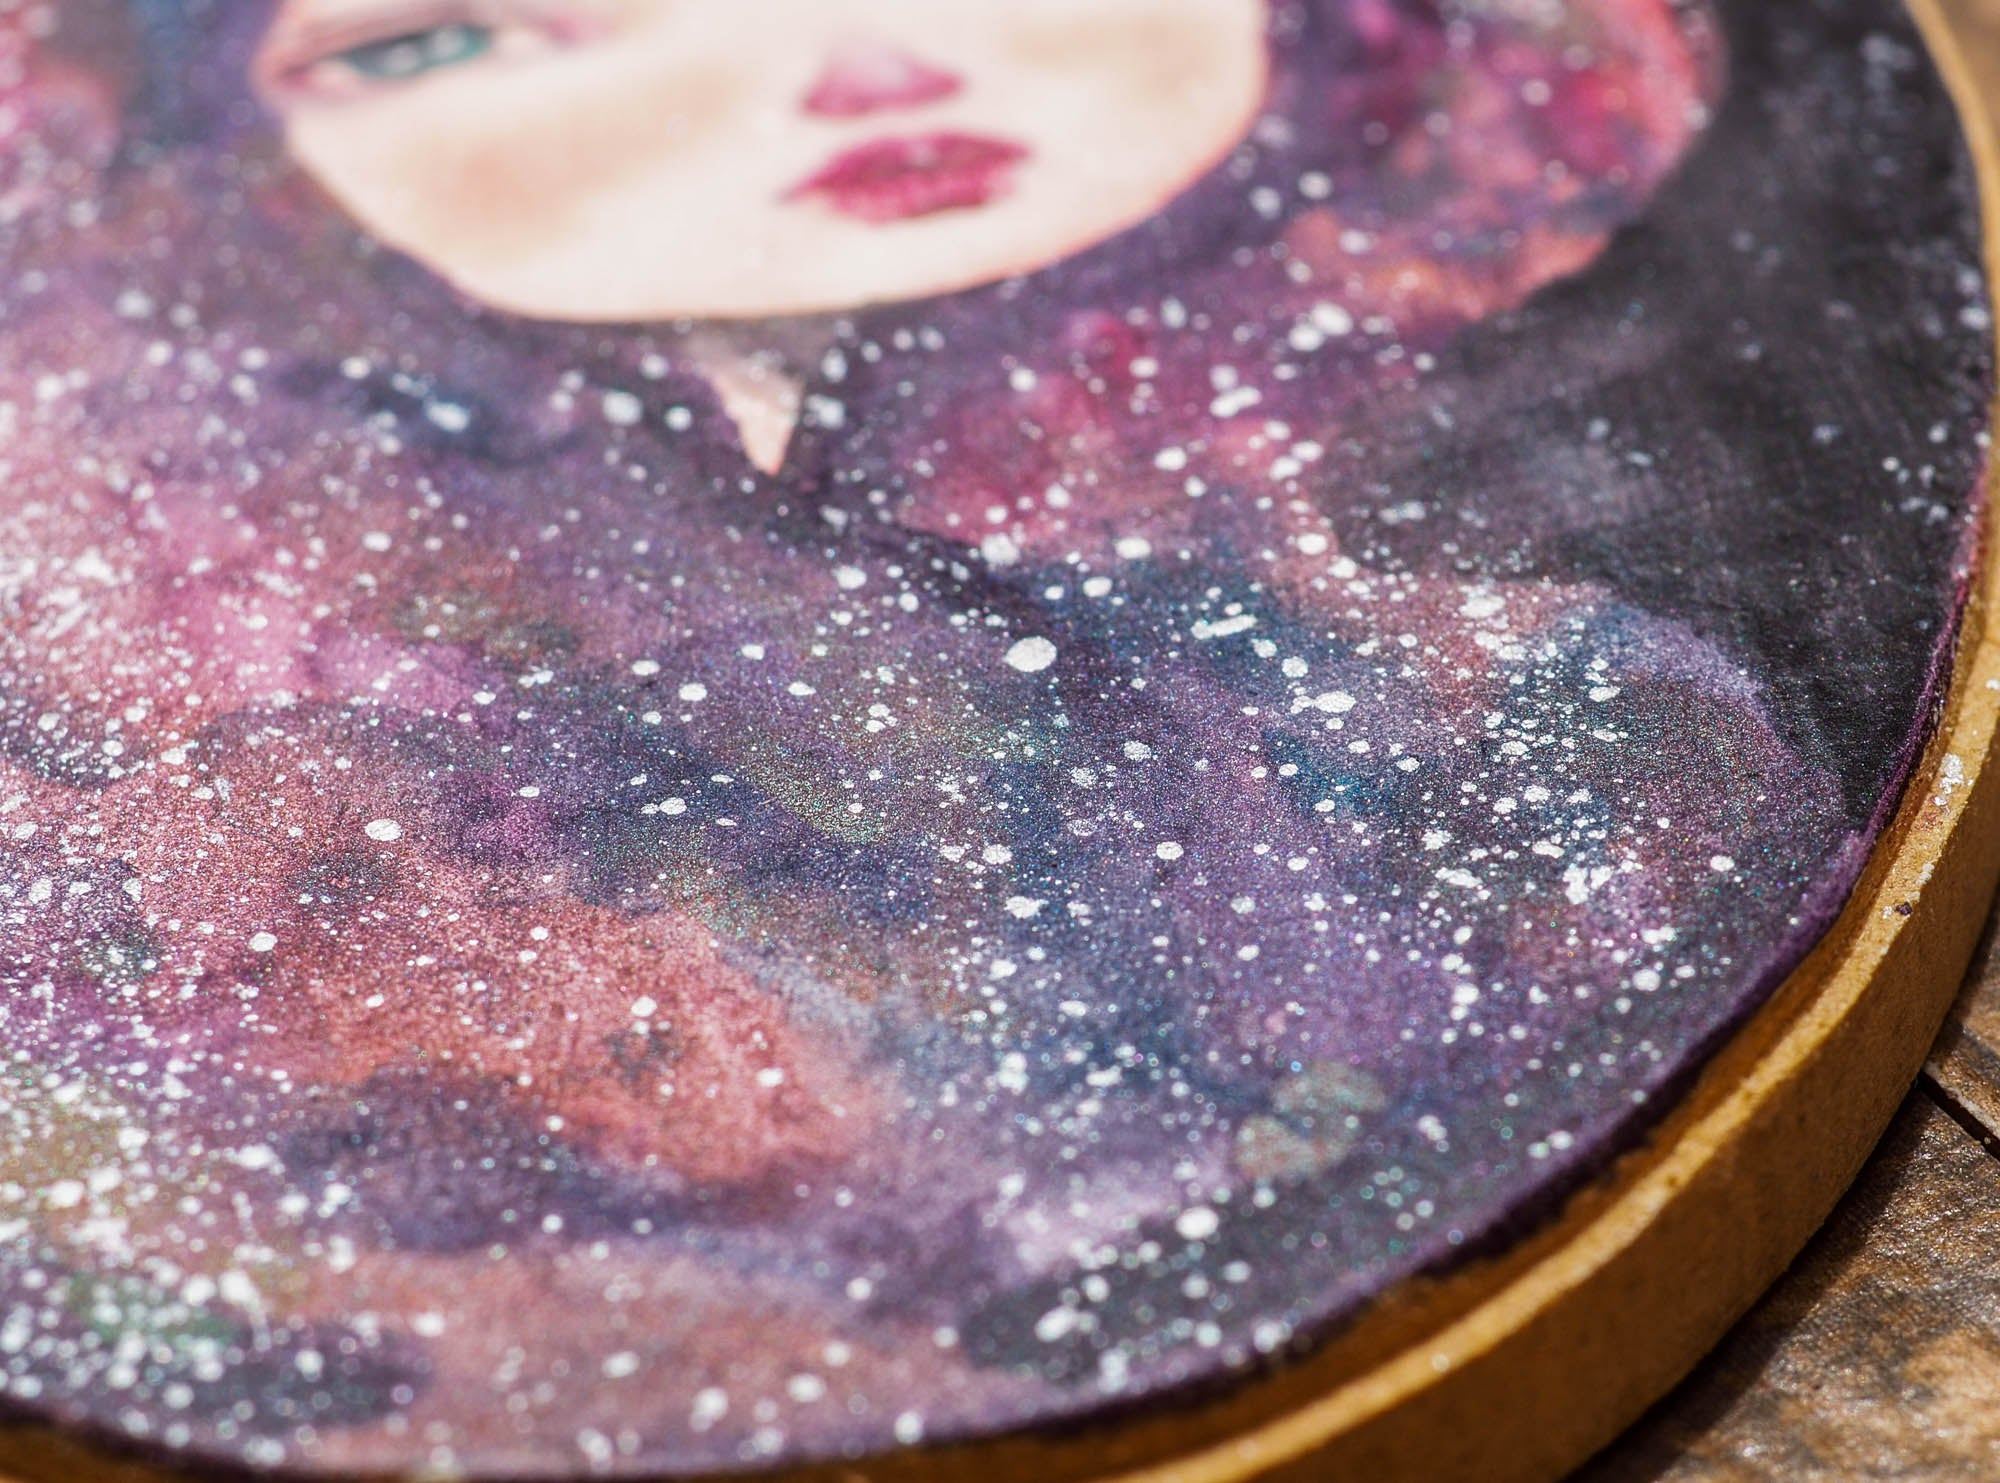 CASSIOPEIA - One of Danita's deep space inspired watercolor portraits, Original Art by Danita Art